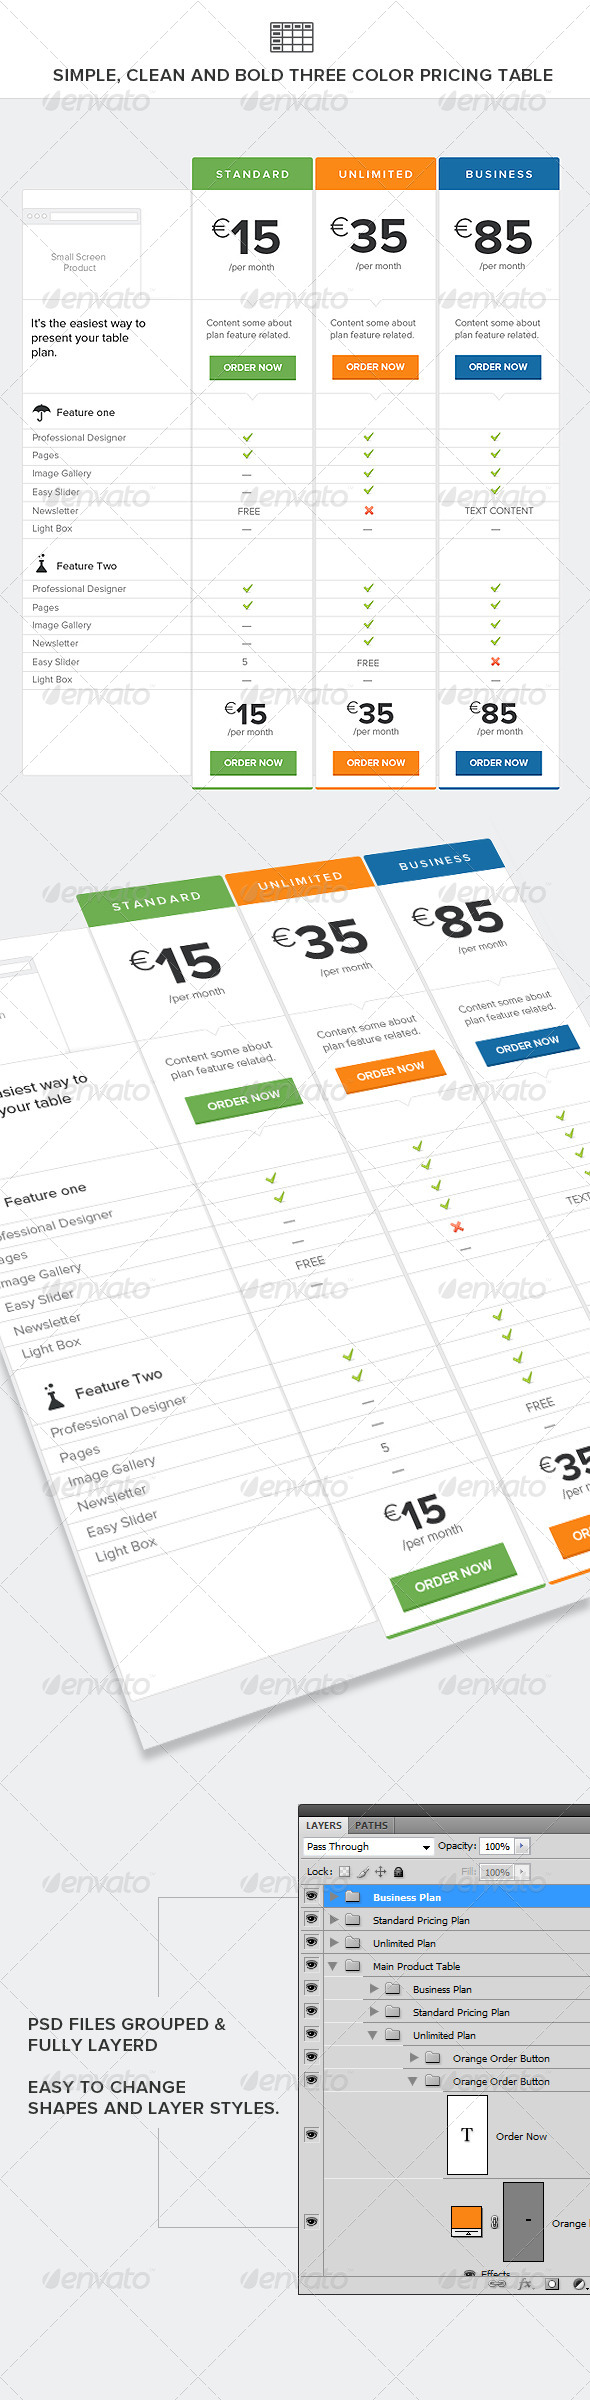 GraphicRiver Simple Clean and Bold Three Color Pricing Table 4598839